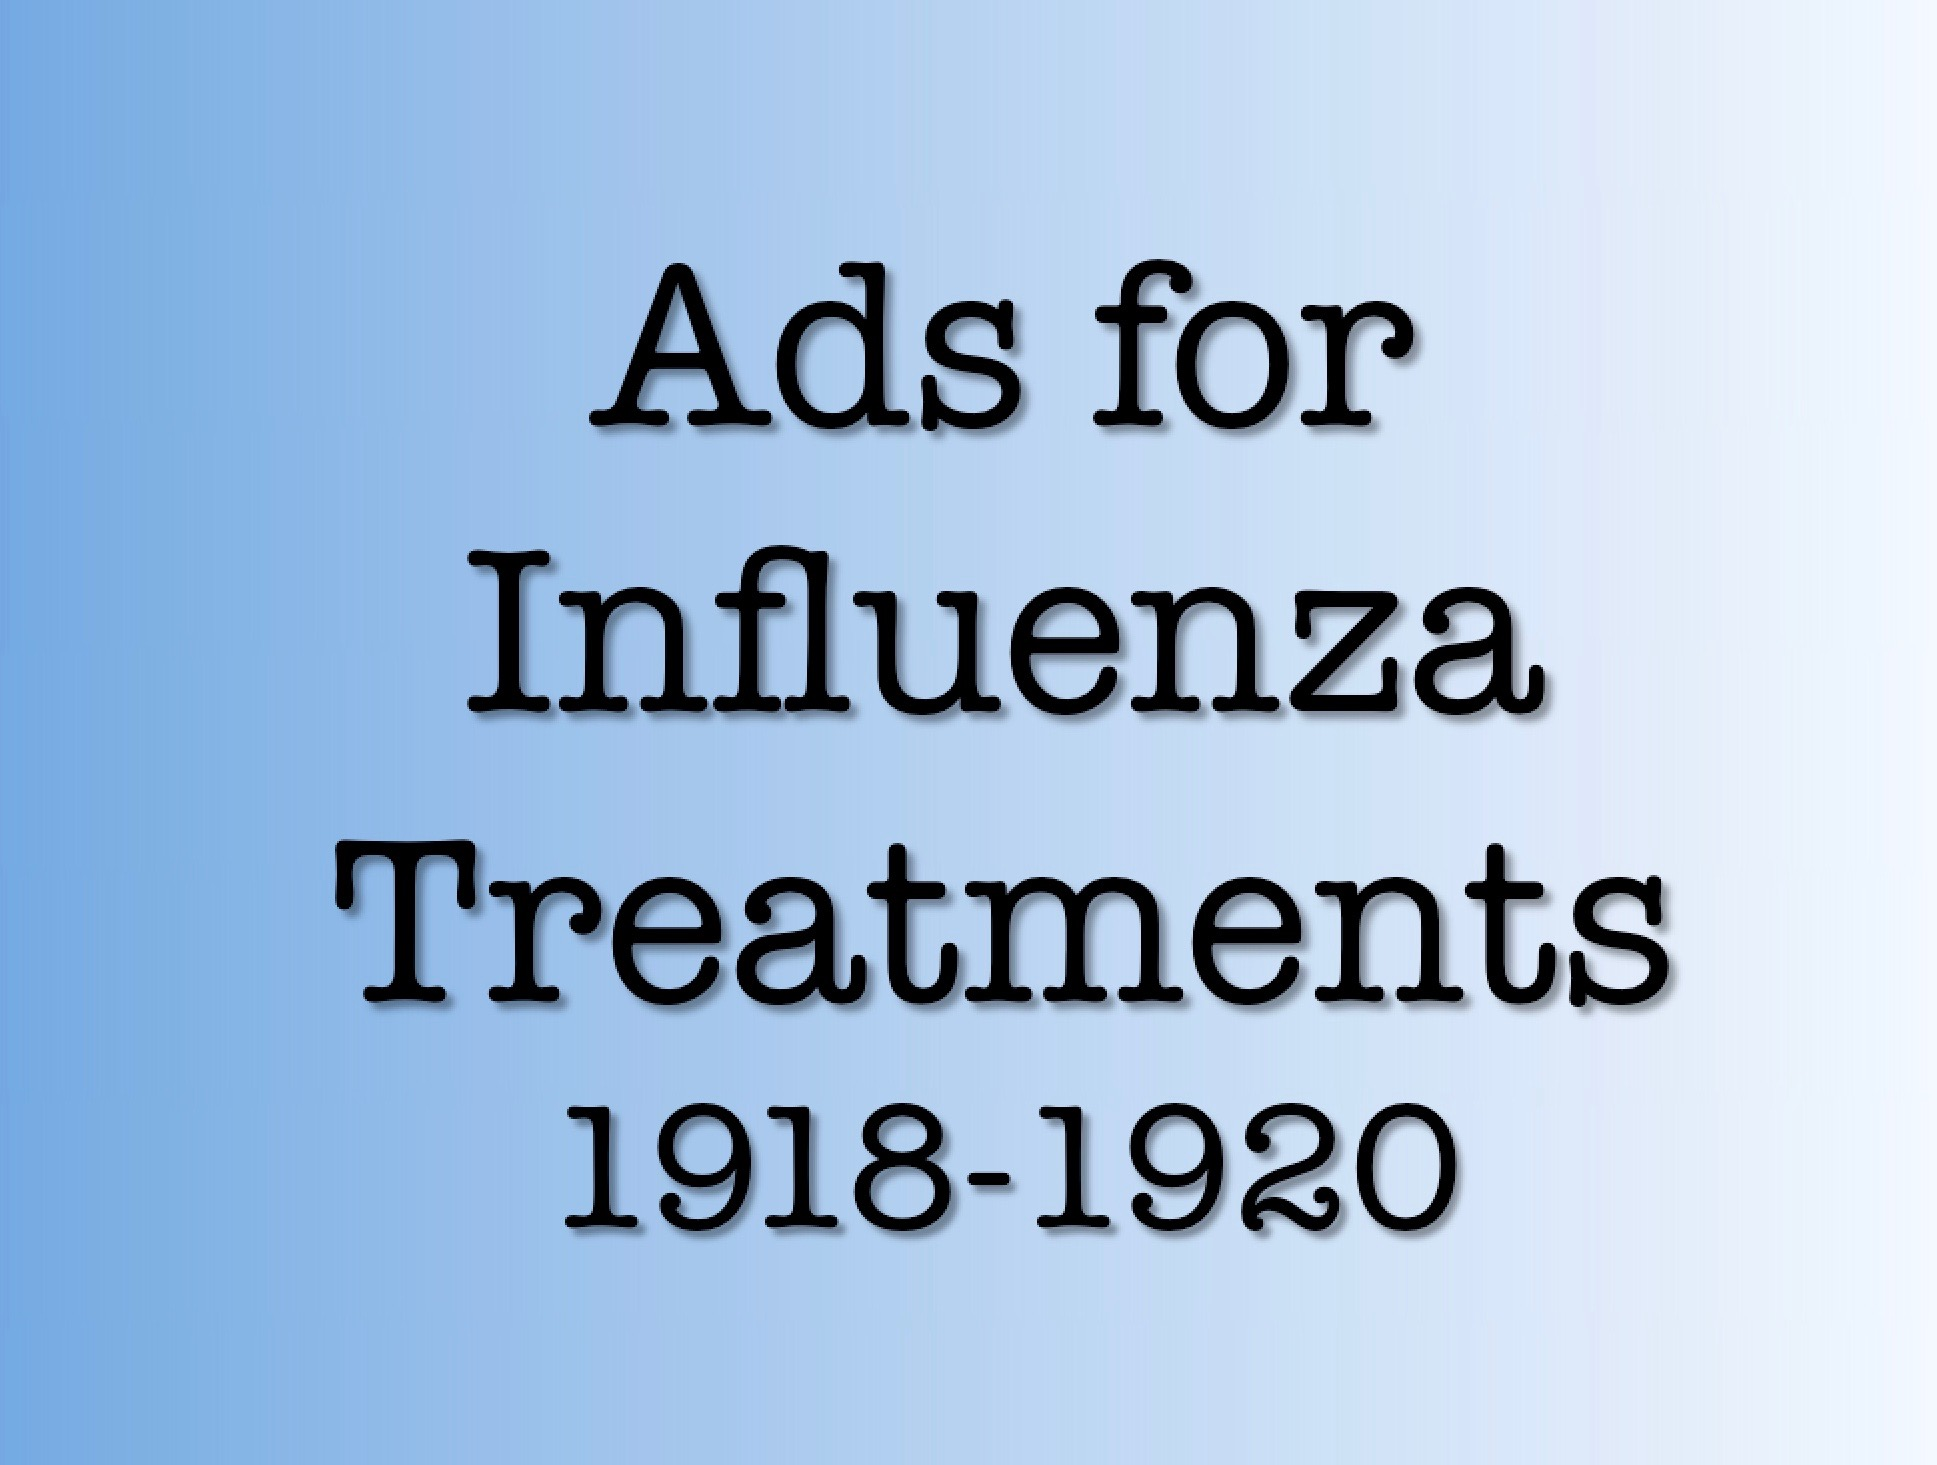 Ads for Flu Treatments